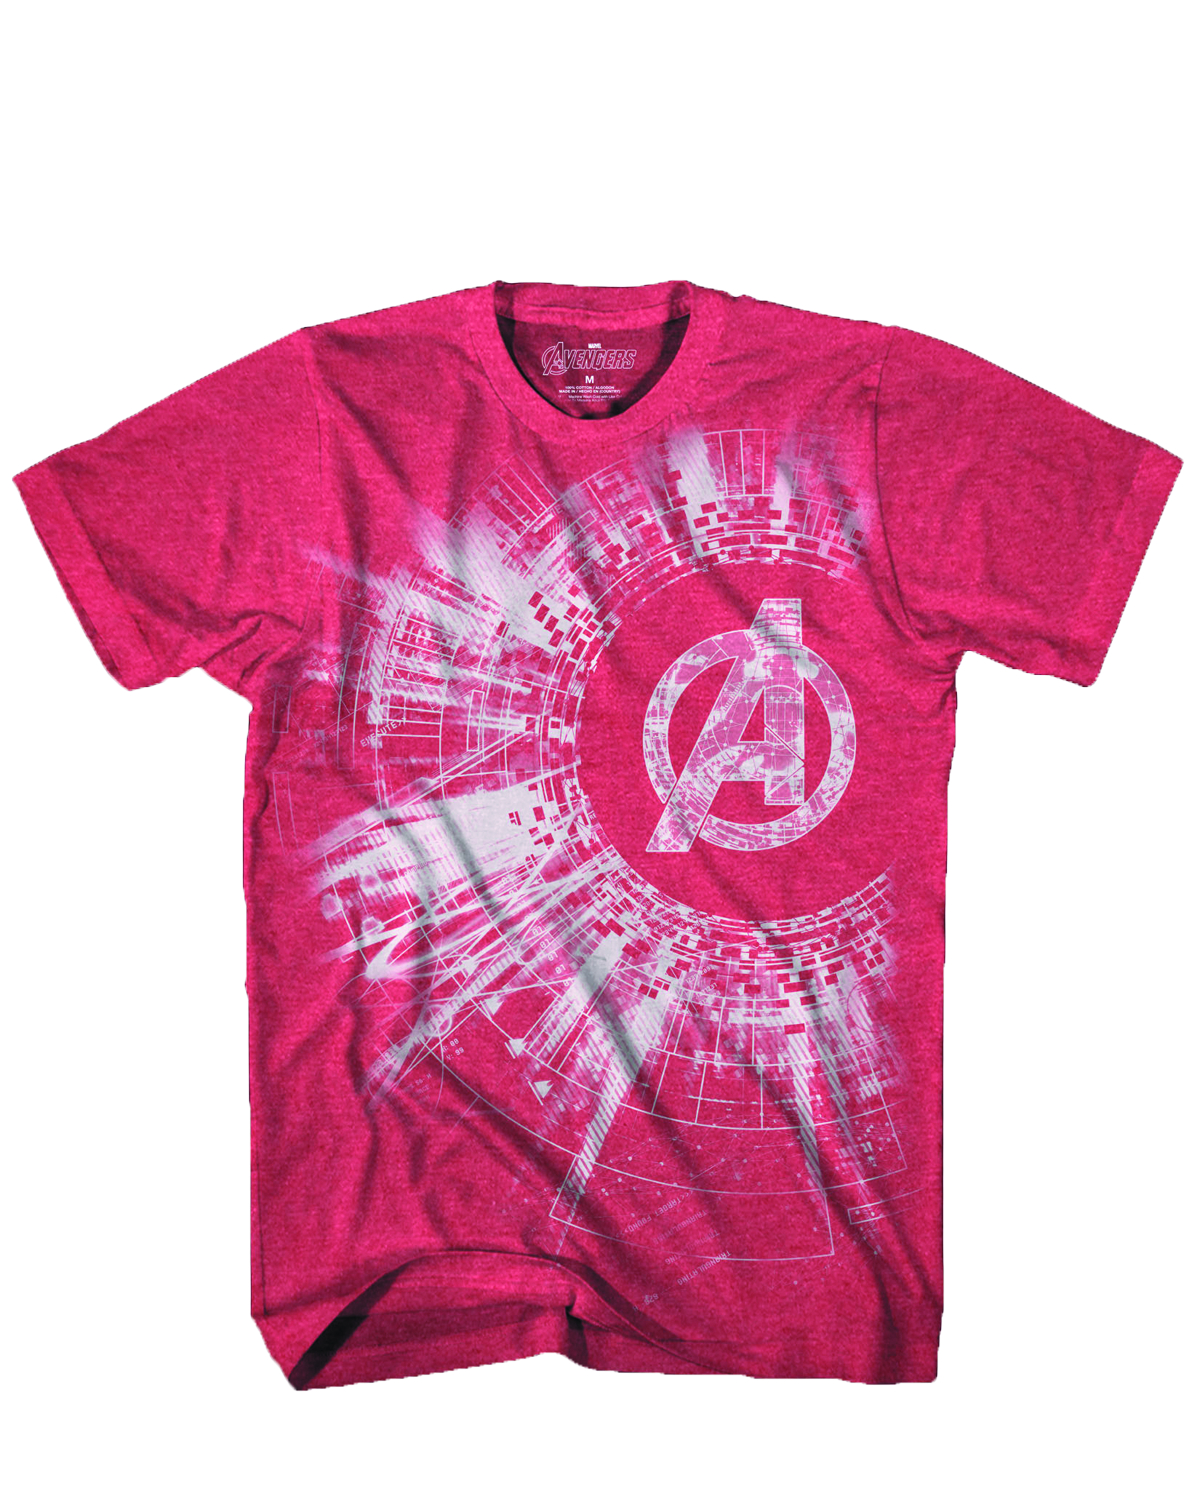 AVENGERS BLACK HOLE RED HEATHER T/S XL